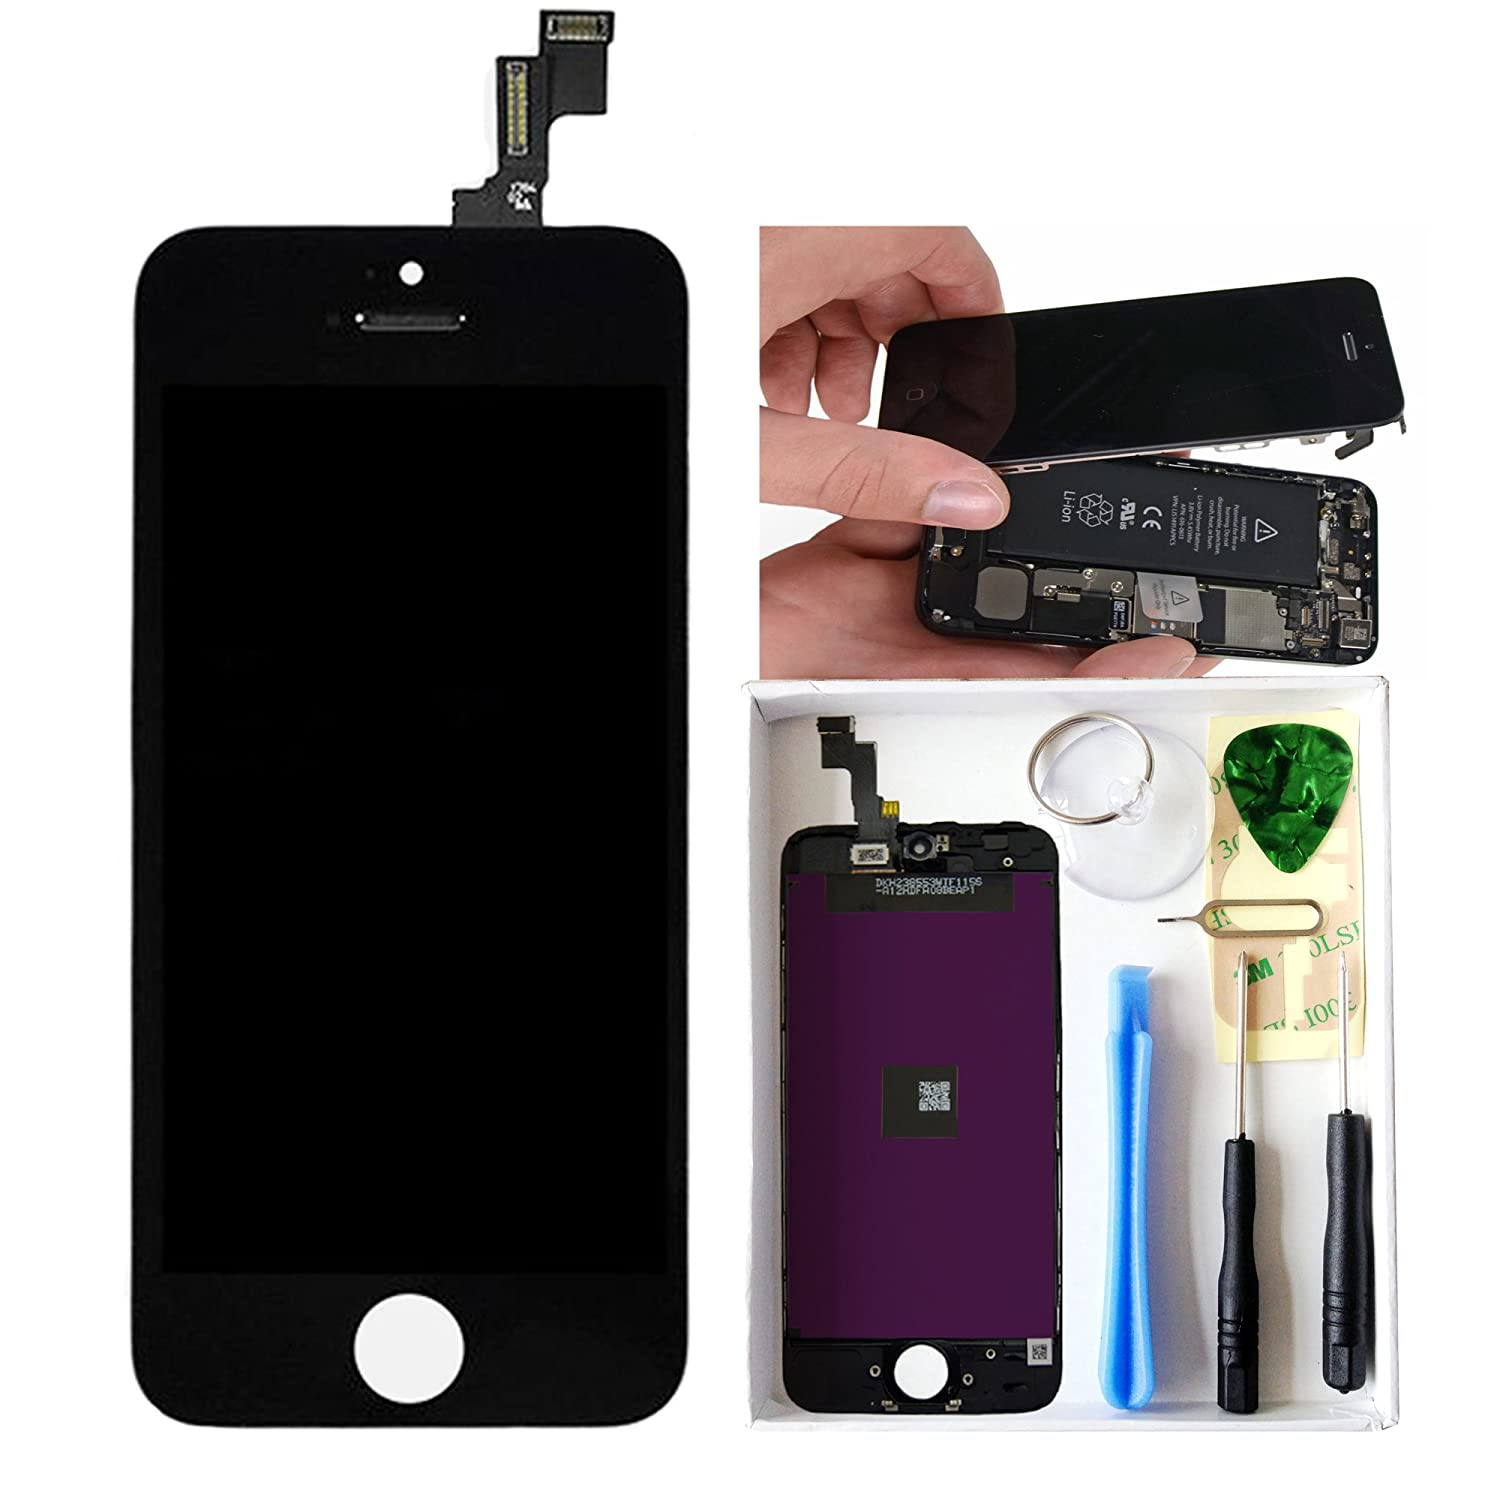 replacement screen for iphone 5c replacement lcd screen and digitizer for iphone 5c 7 17966